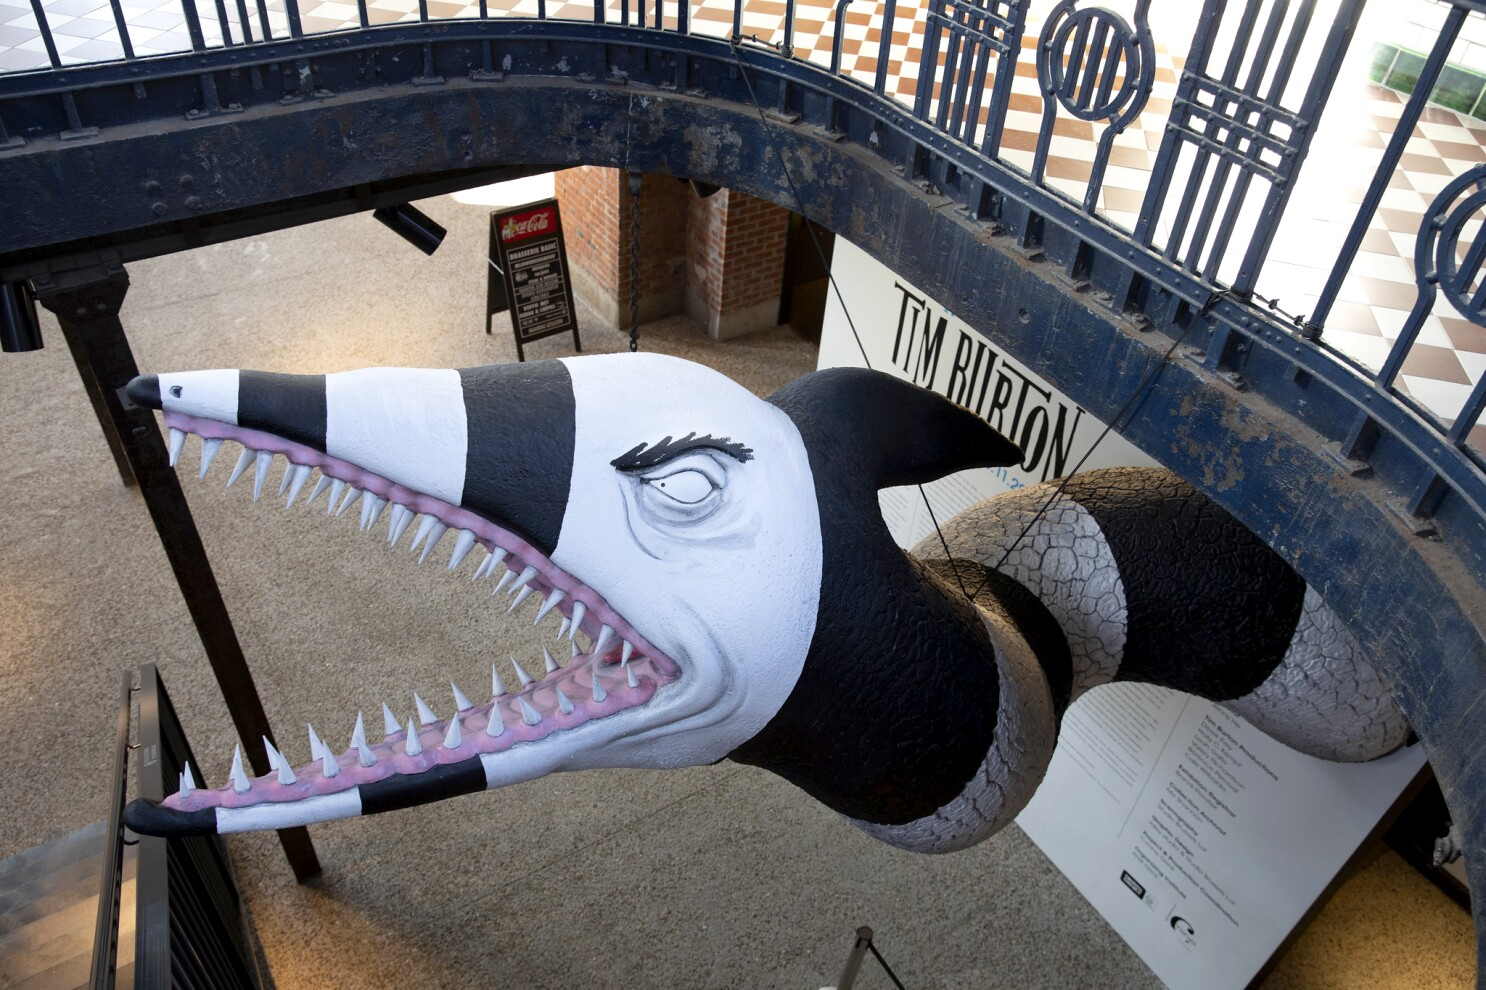 Characters invade Las Vegas, from Tim Burton to Hello Kitty